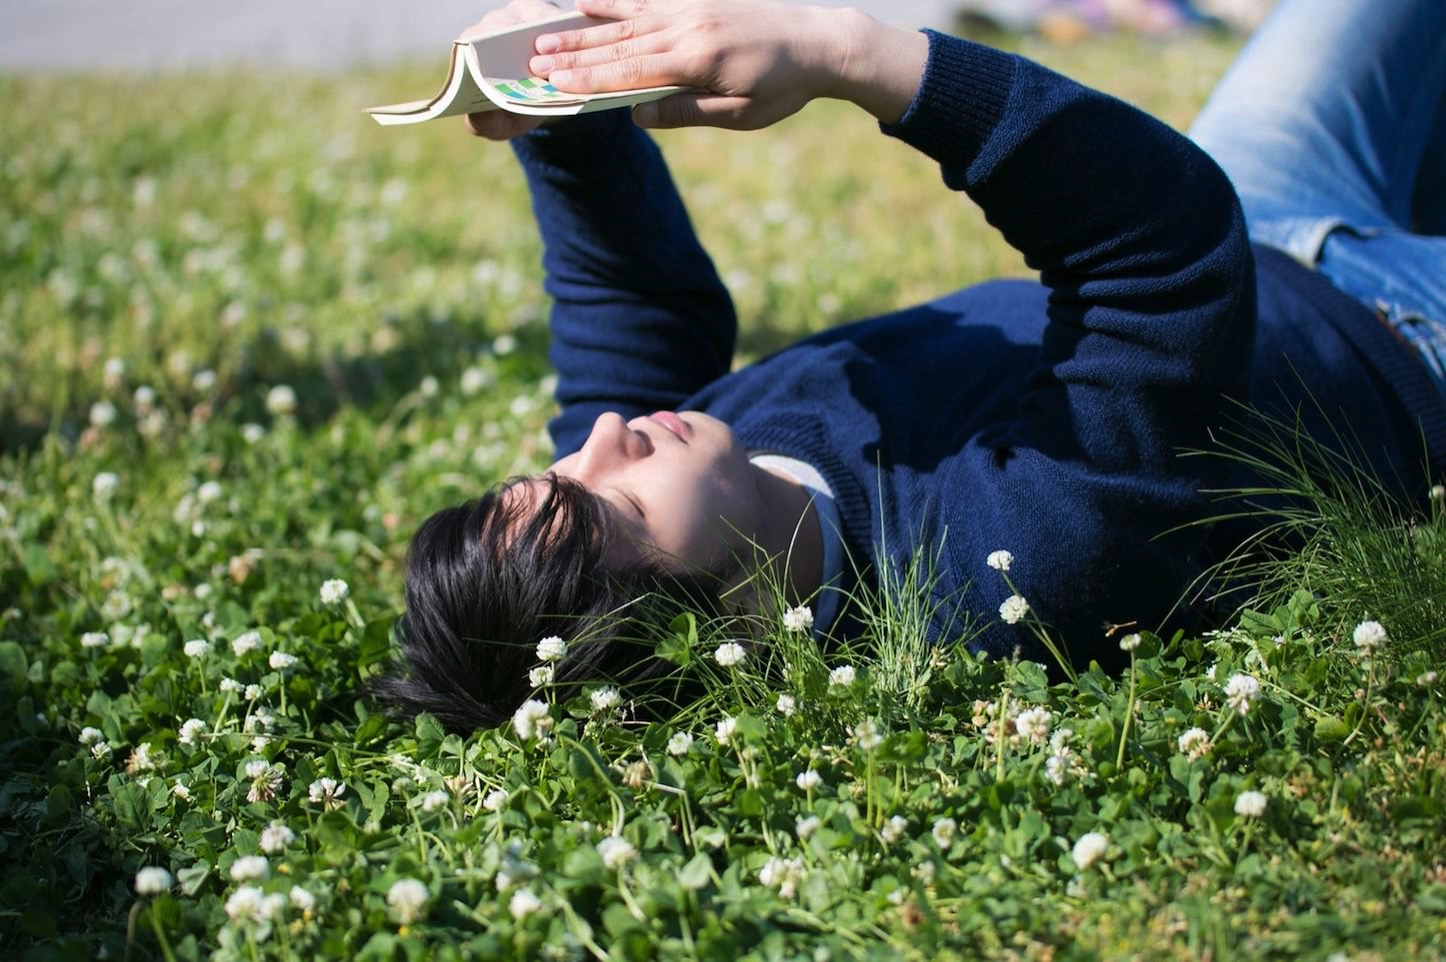 Ookawa Reading on Grass